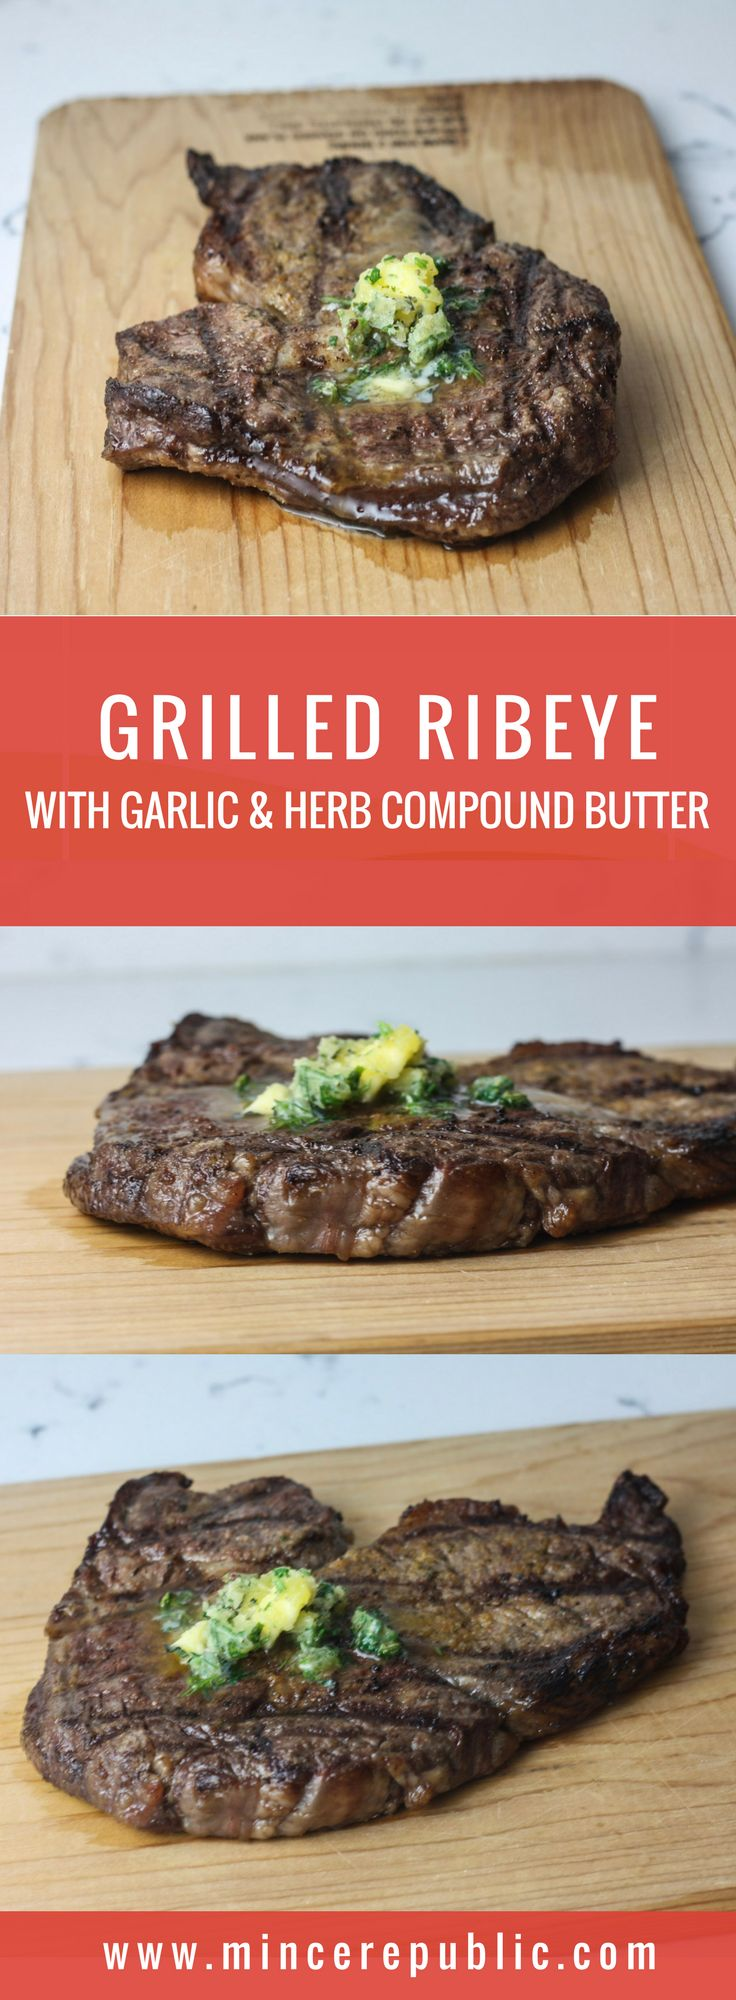 Grilled Ribeye with Garlic & Herb Compound Butter recipe | mincerepublic.com